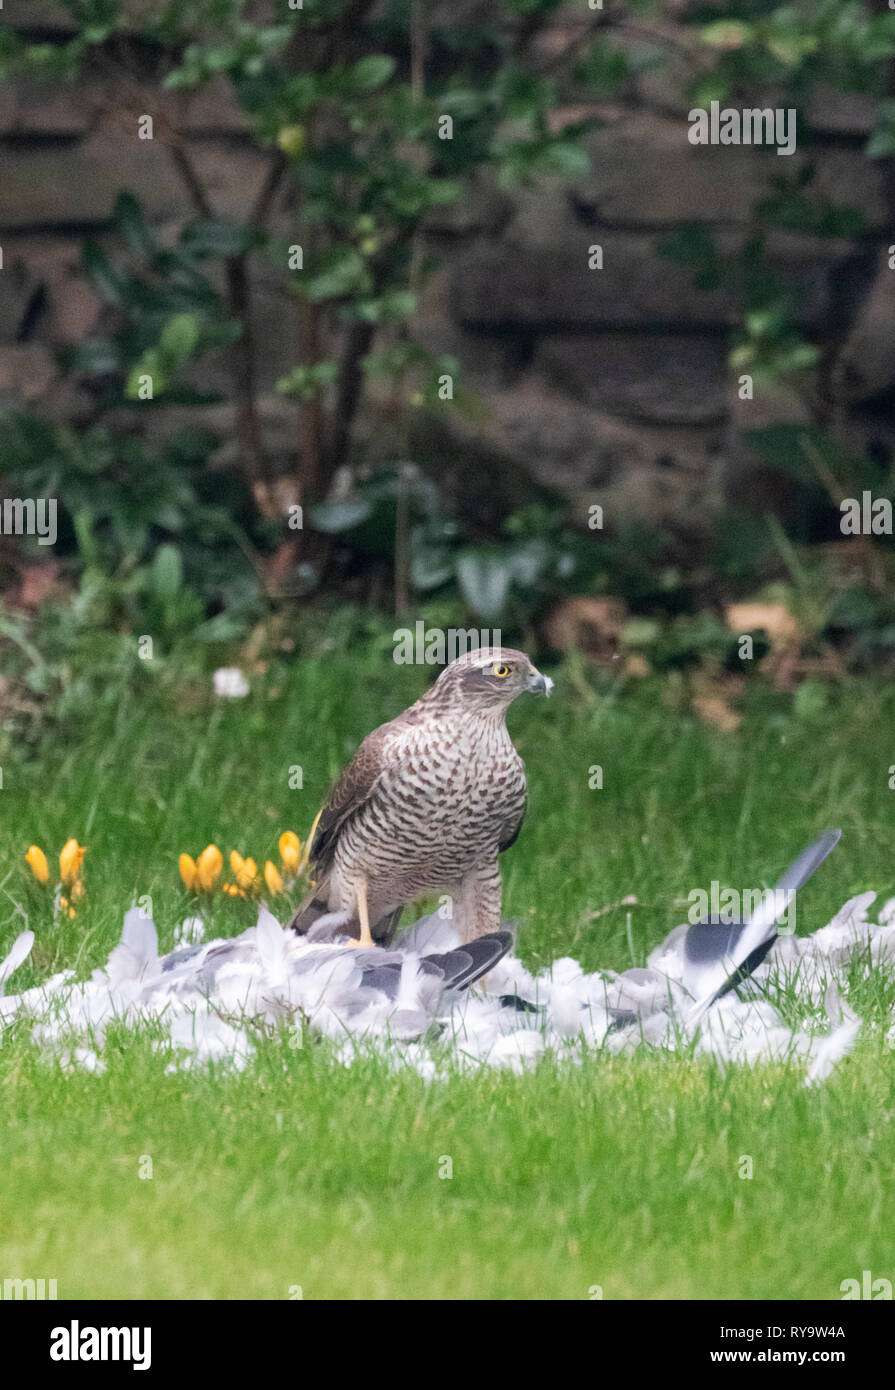 Sparrowhawk UK - a sparrowhawk feeding on a bird in a domestic garden, Suffolk UK - Stock Image